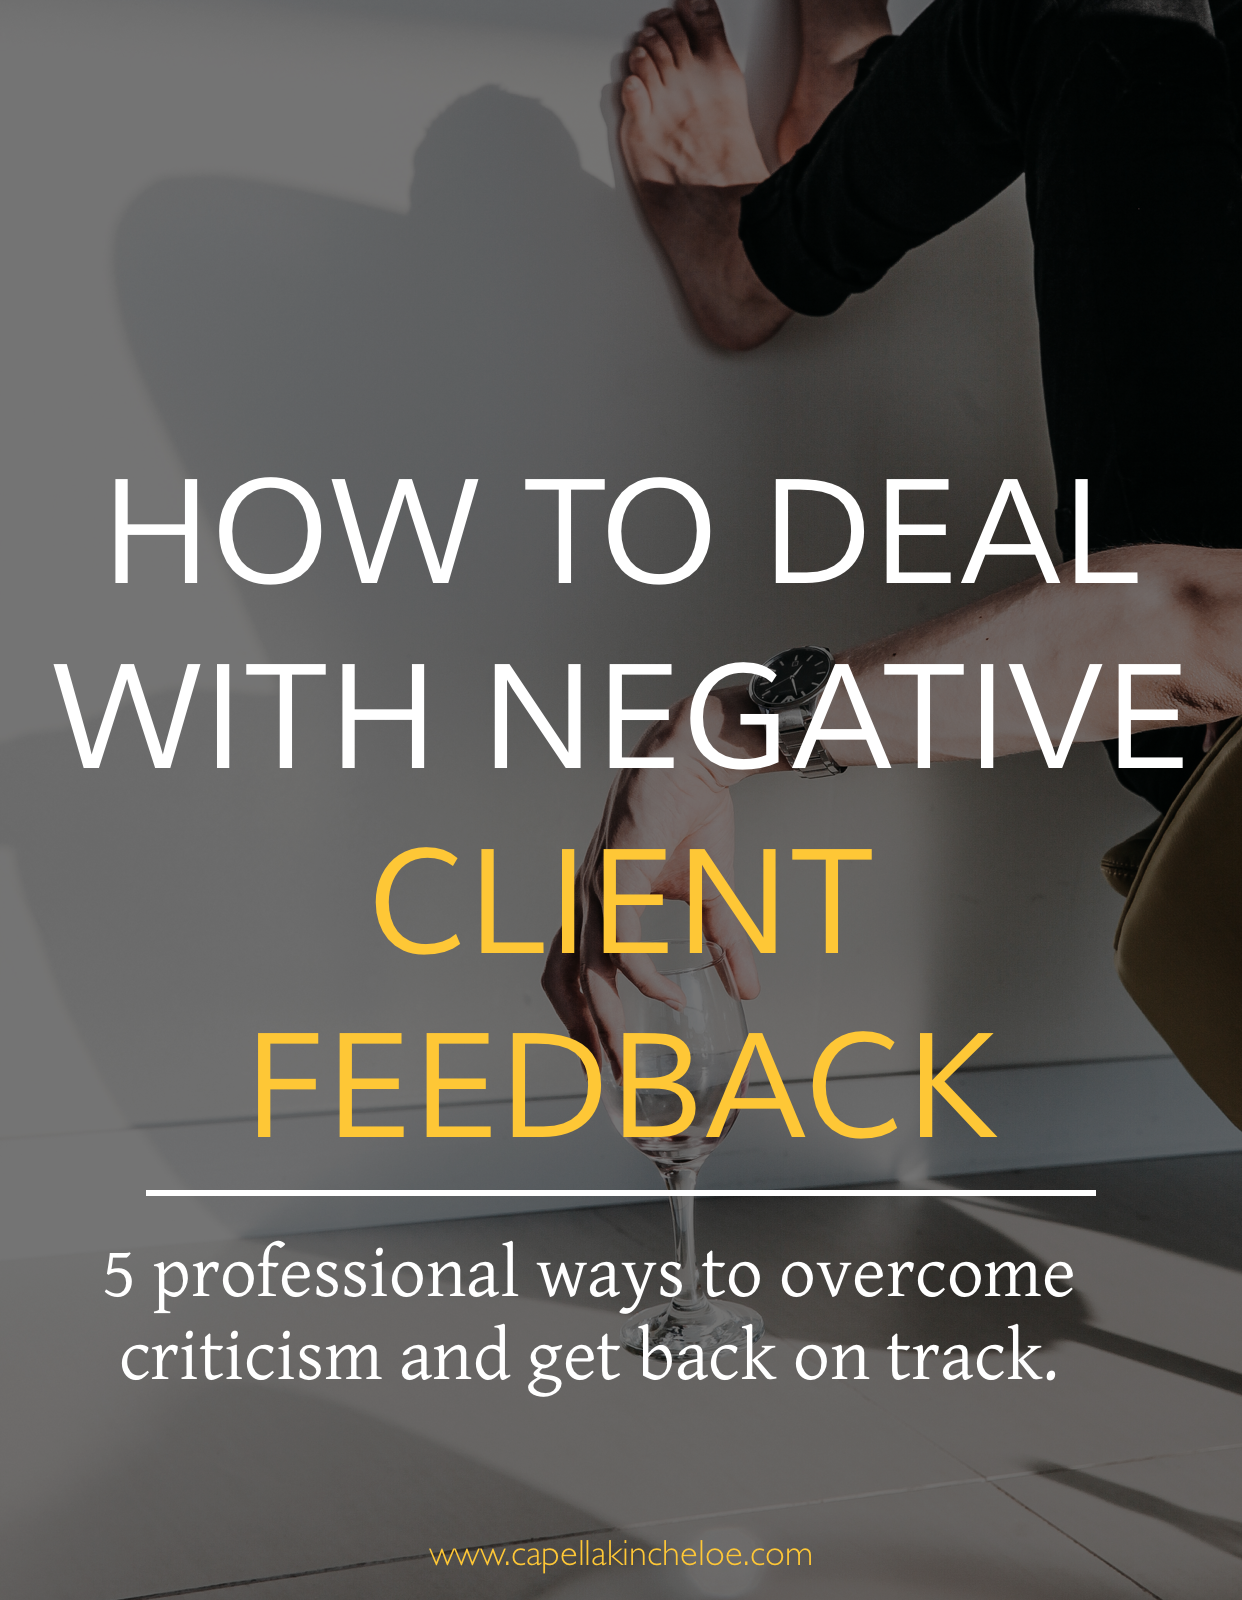 Don't let client criticism or negative feedback get you down.  Learn how to handle it the professional way!